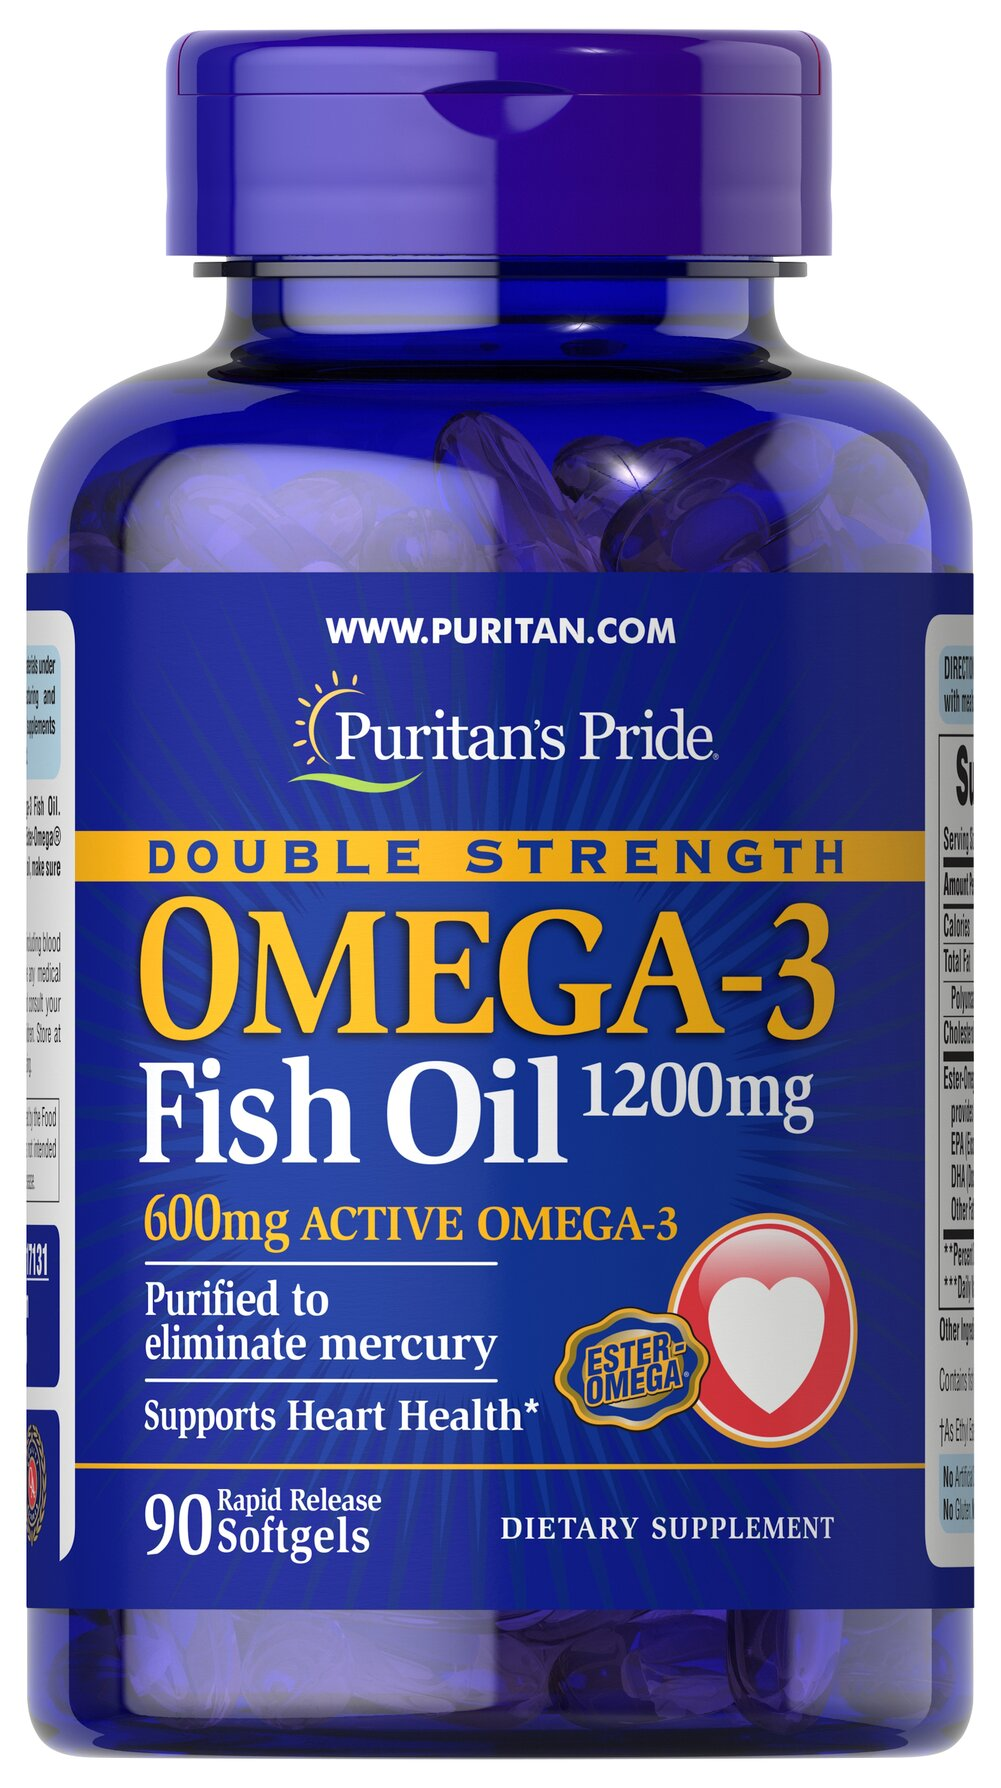 Double Strength Omega-3 Fish Oil 1200 mg/600 mg Omega-3  90 Softgels 1200 mg $13.99